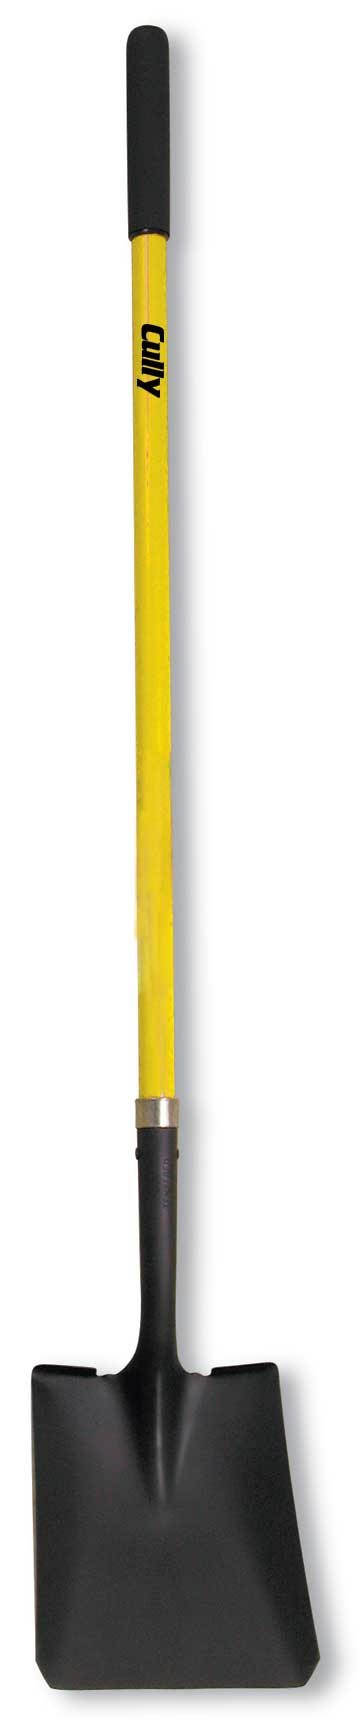 CULLY 37253 #2 Square Point ShovelYellow